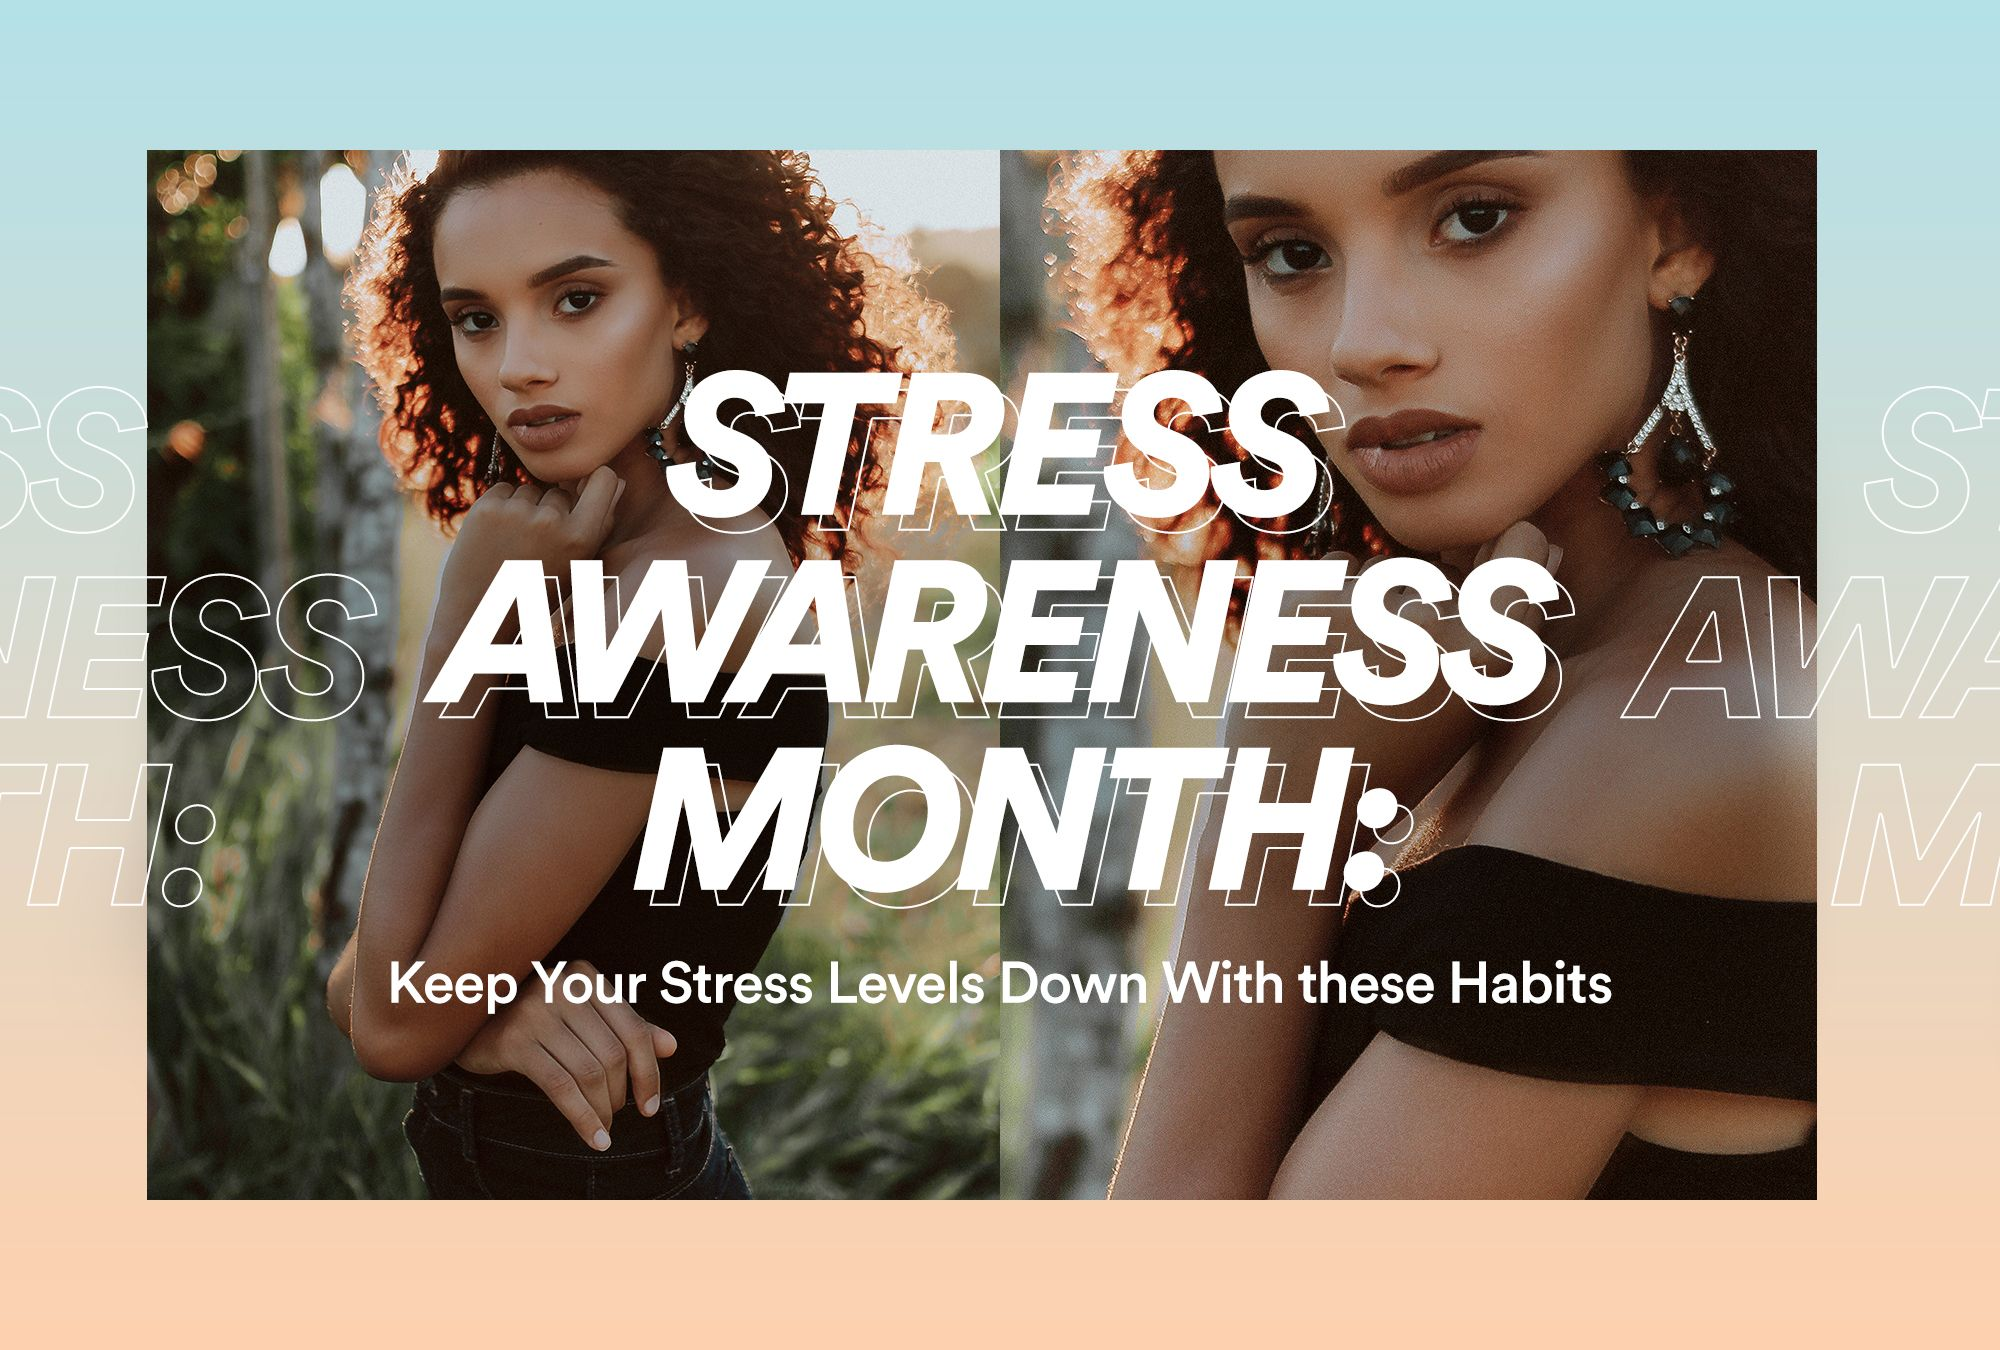 Stress Awareness Month: Keep Your Stress Levels Down With these Habits